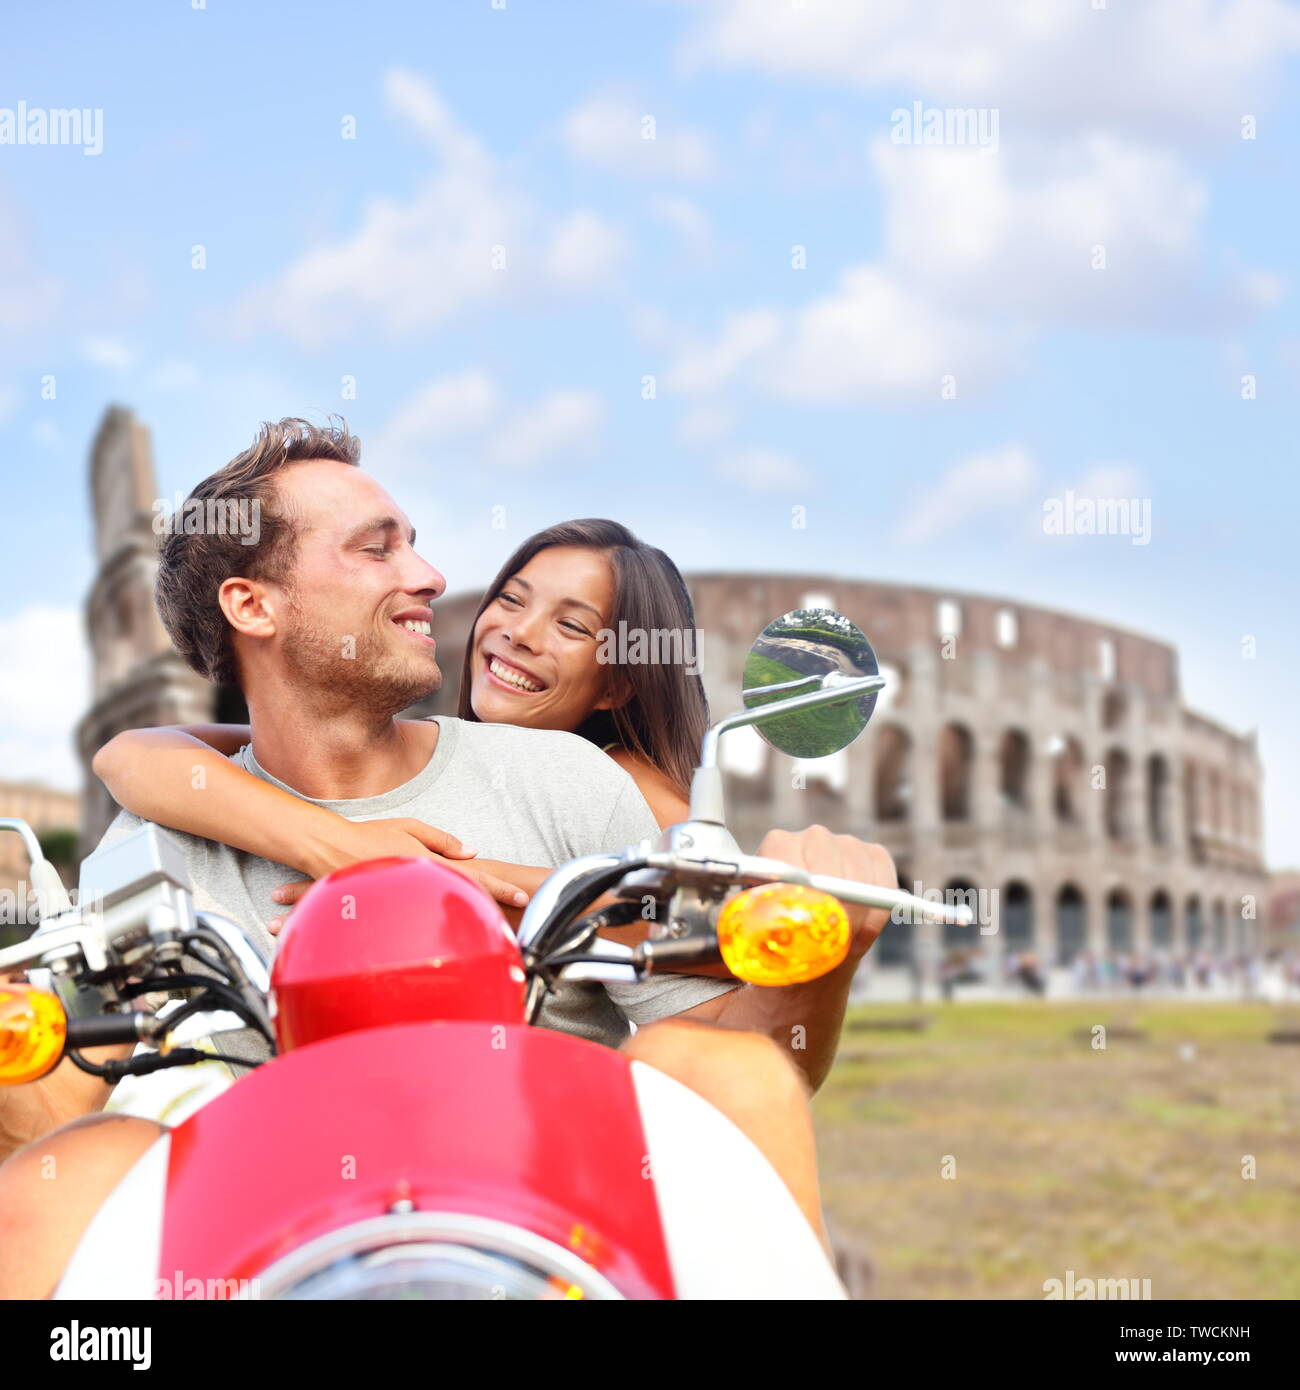 couple moped italy photos couple moped italy images alamy. Black Bedroom Furniture Sets. Home Design Ideas